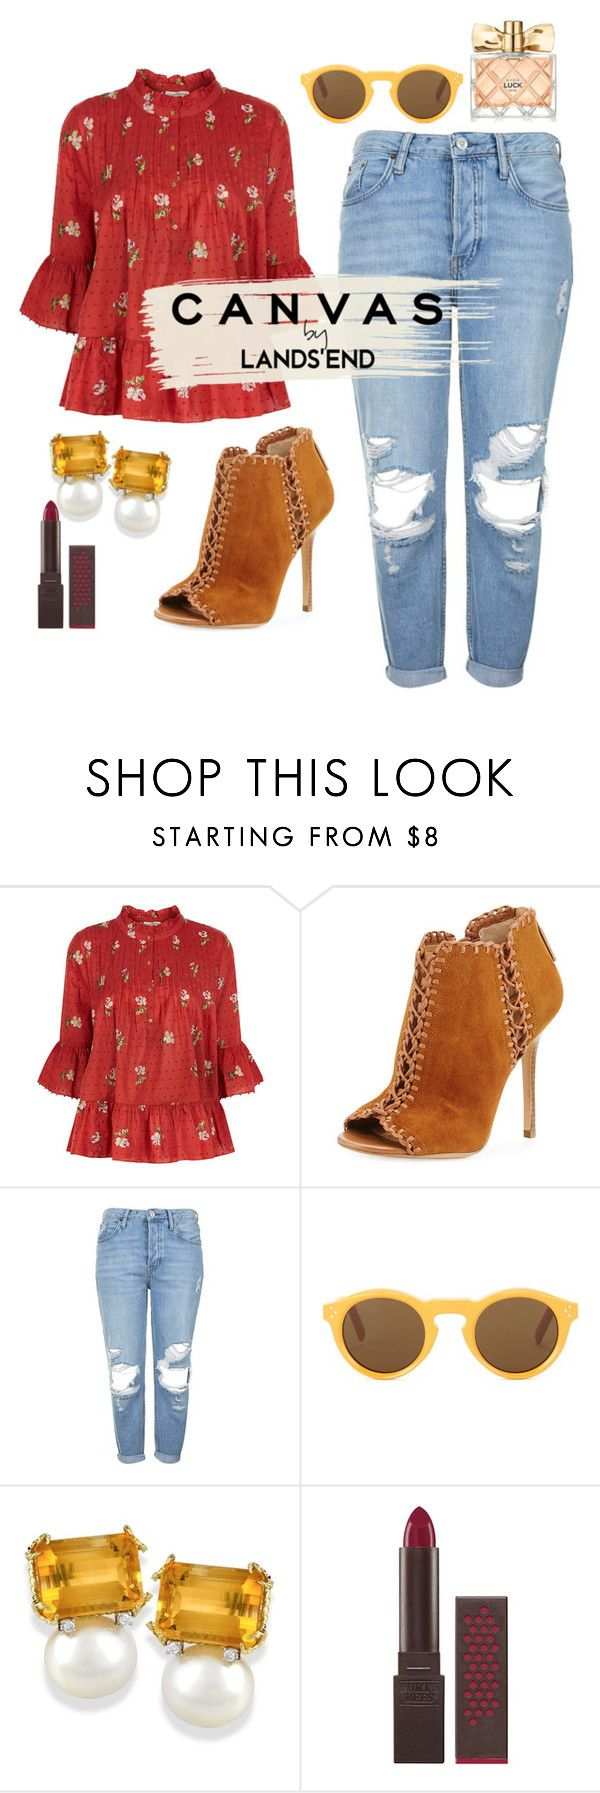 """""""Canvas."""" by emiam ❤ liked on Polyvore featuring Ulla Johnson, Michael Kors, Topshop, Burt's Bees, Avon and Lands' End"""